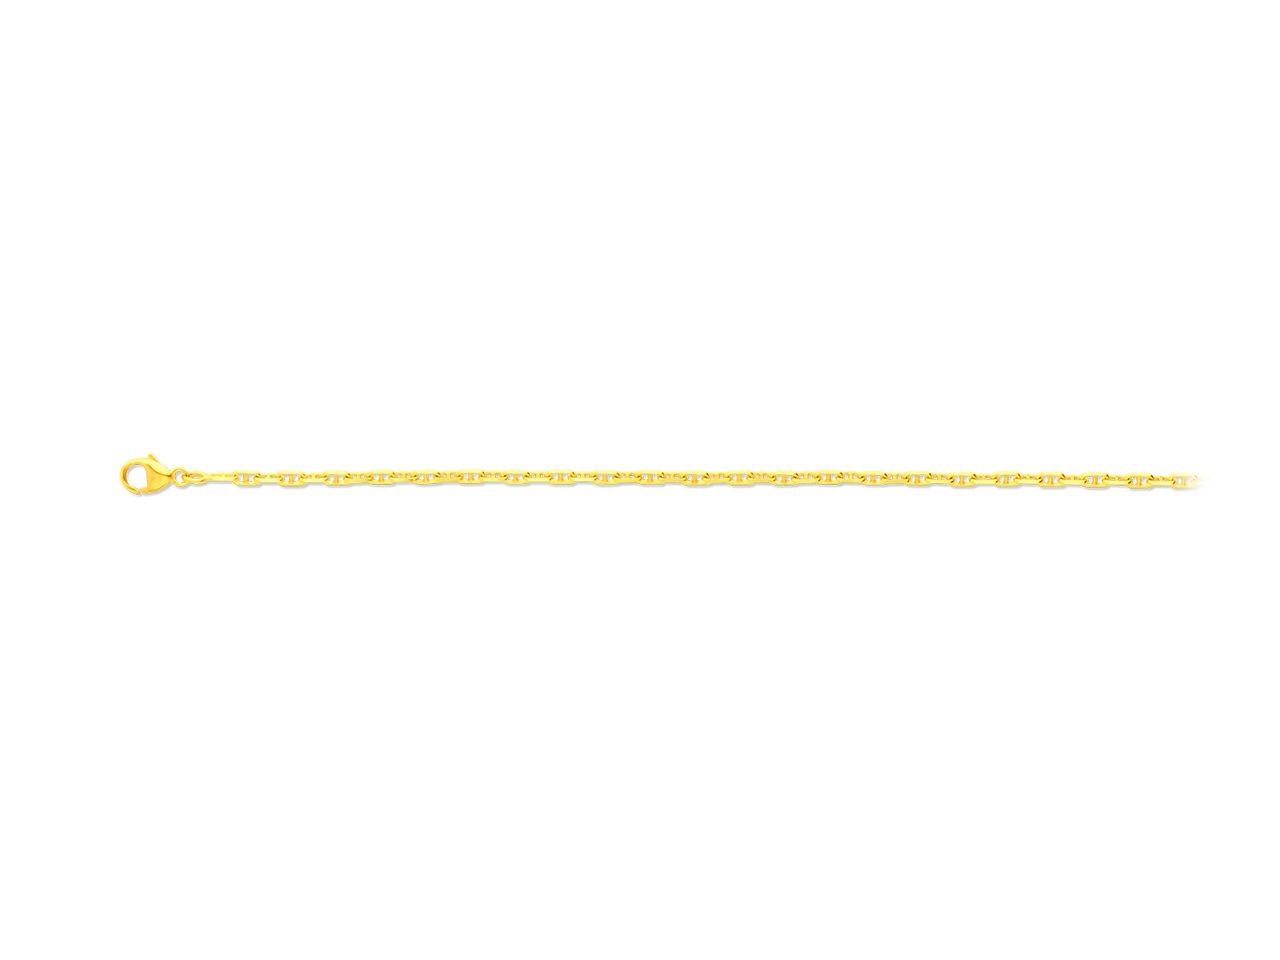 Collier maille forçat marine diamantée, Or jaune 18k, 2,3 mm, 55 cm